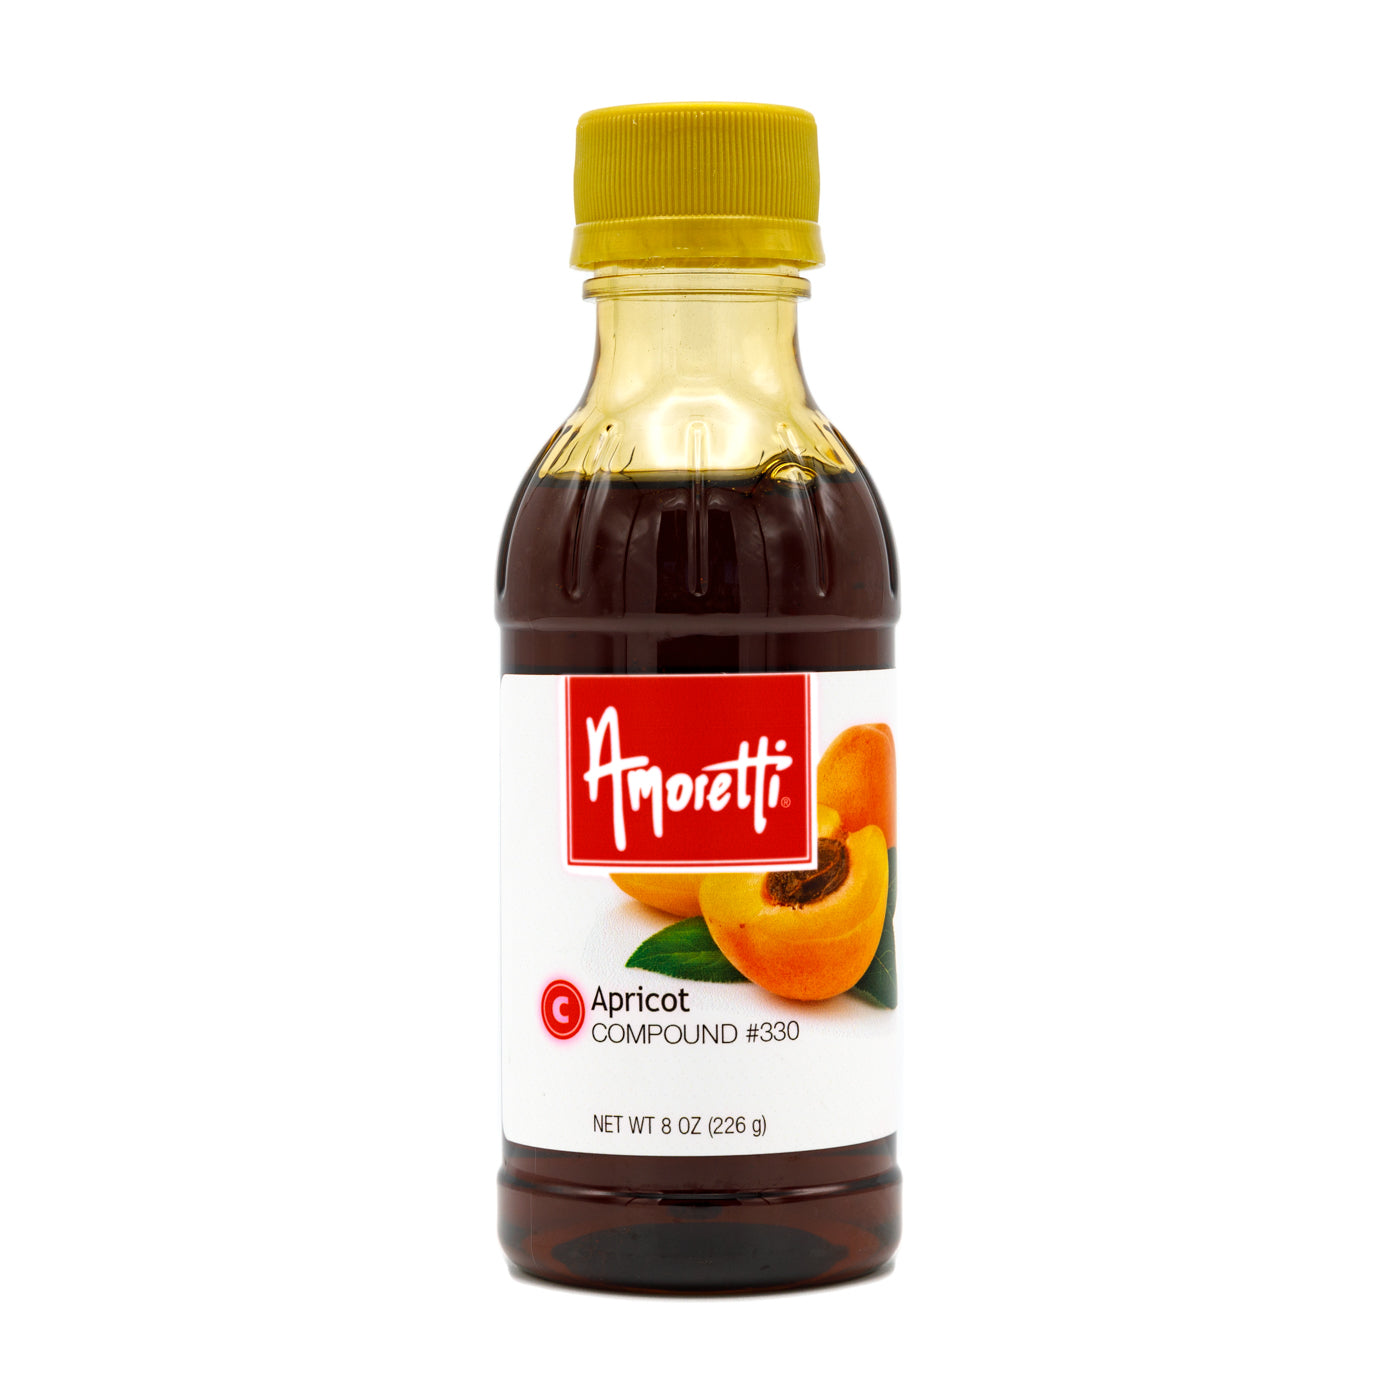 Amoretti Apricot Compound